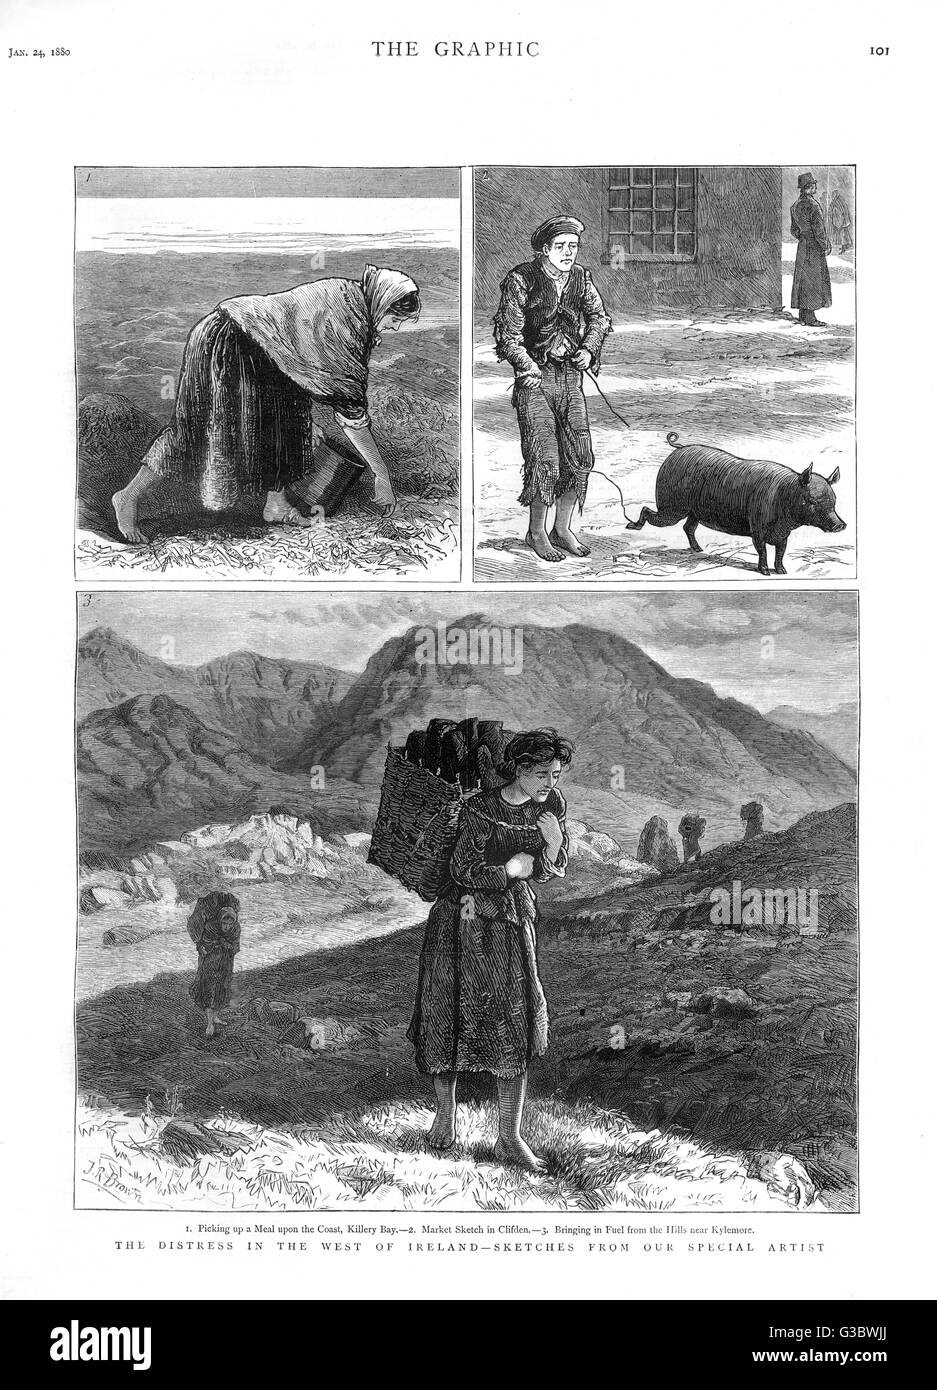 The distress in Ireland-sketches by The Graphic special artist J.R Brown. Scenes picking up a meal upon the coast, - Stock Image